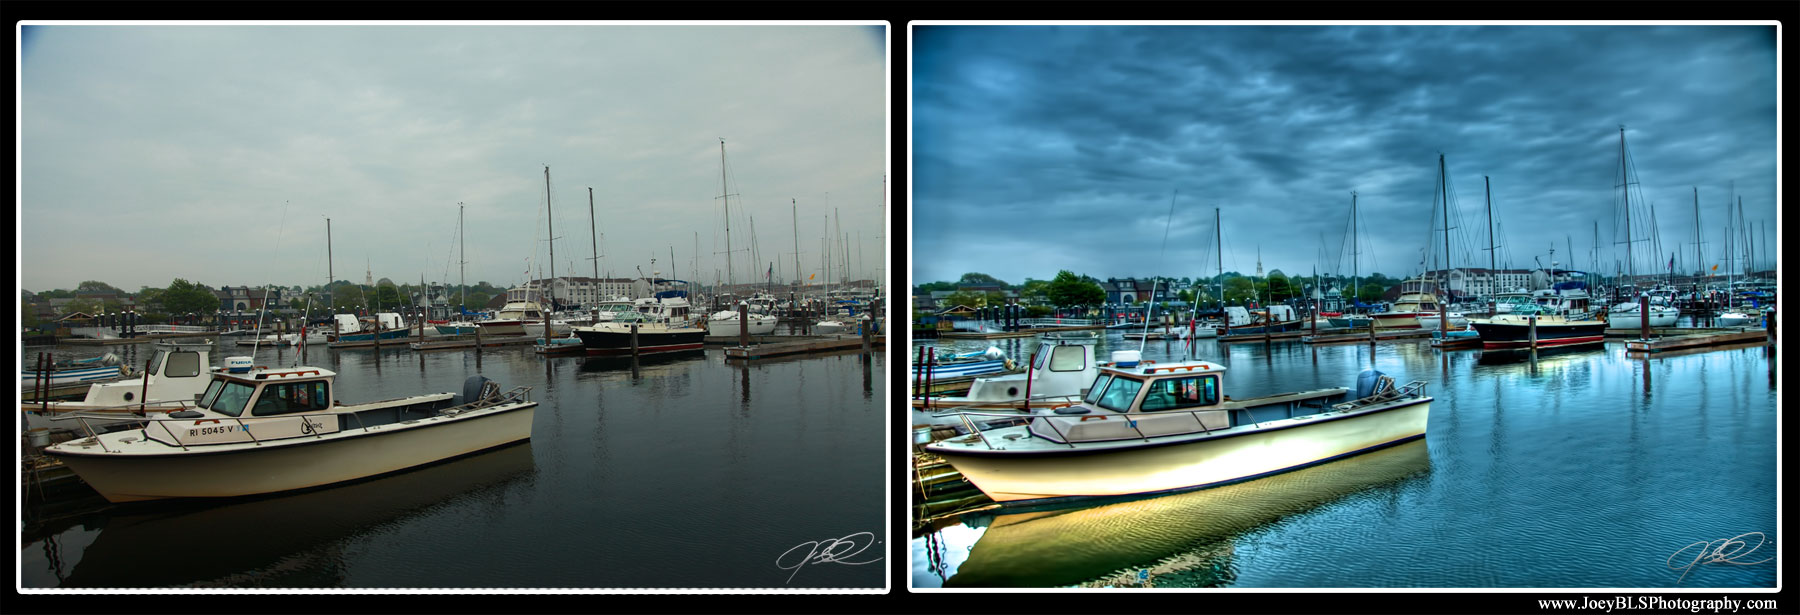 HDR Before and After of Newport, RI Boats in the Harbor